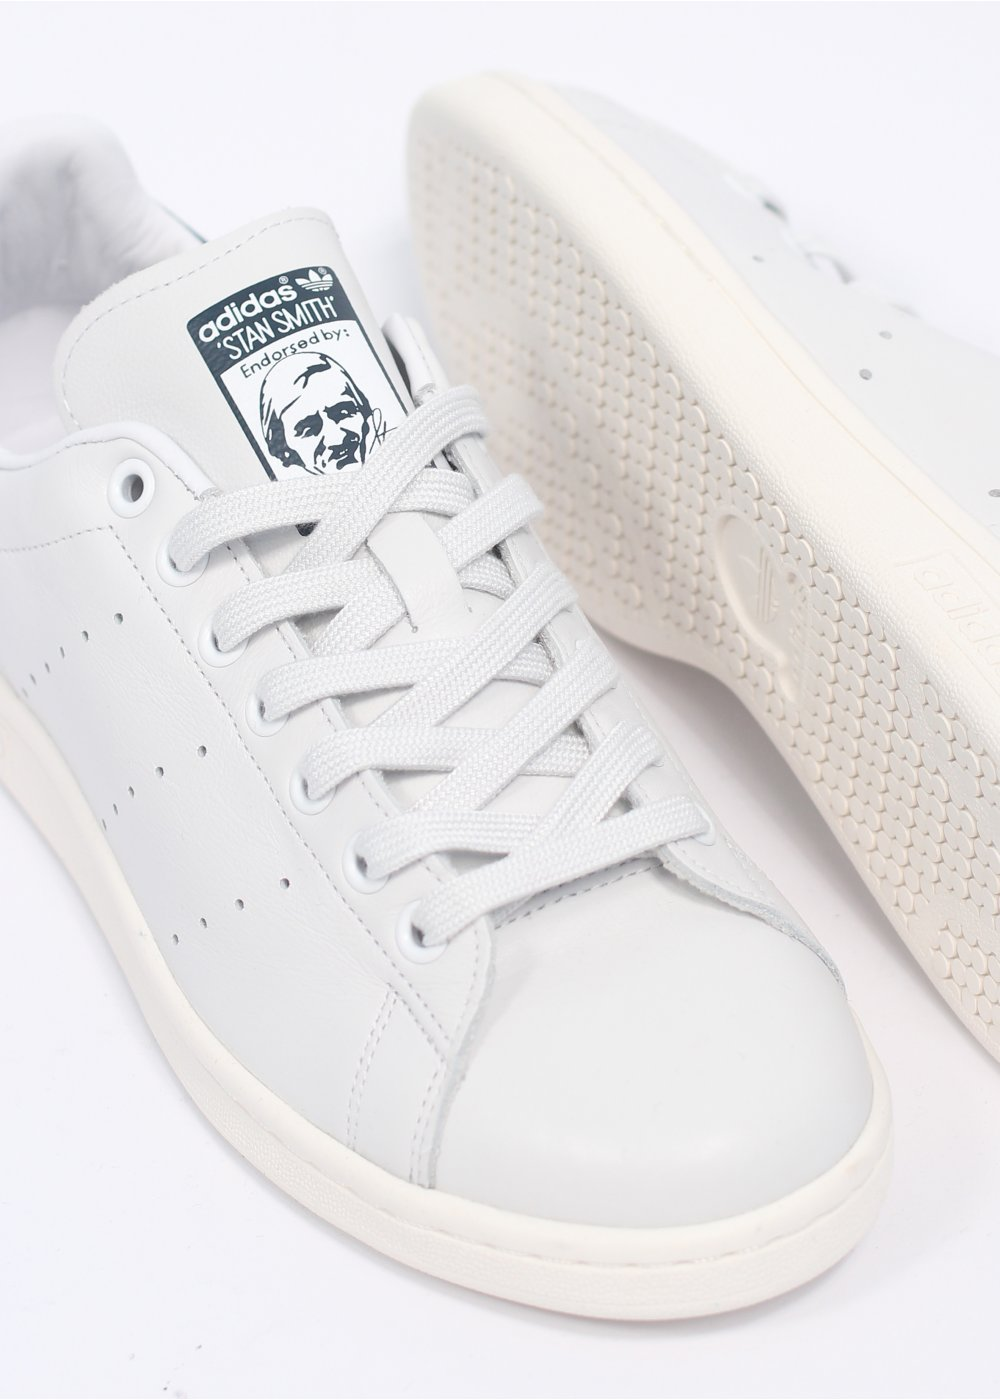 newest 5b681 1c8c4 adidas Originals Footwear Stan Smith Trainers - Neo White / Navy